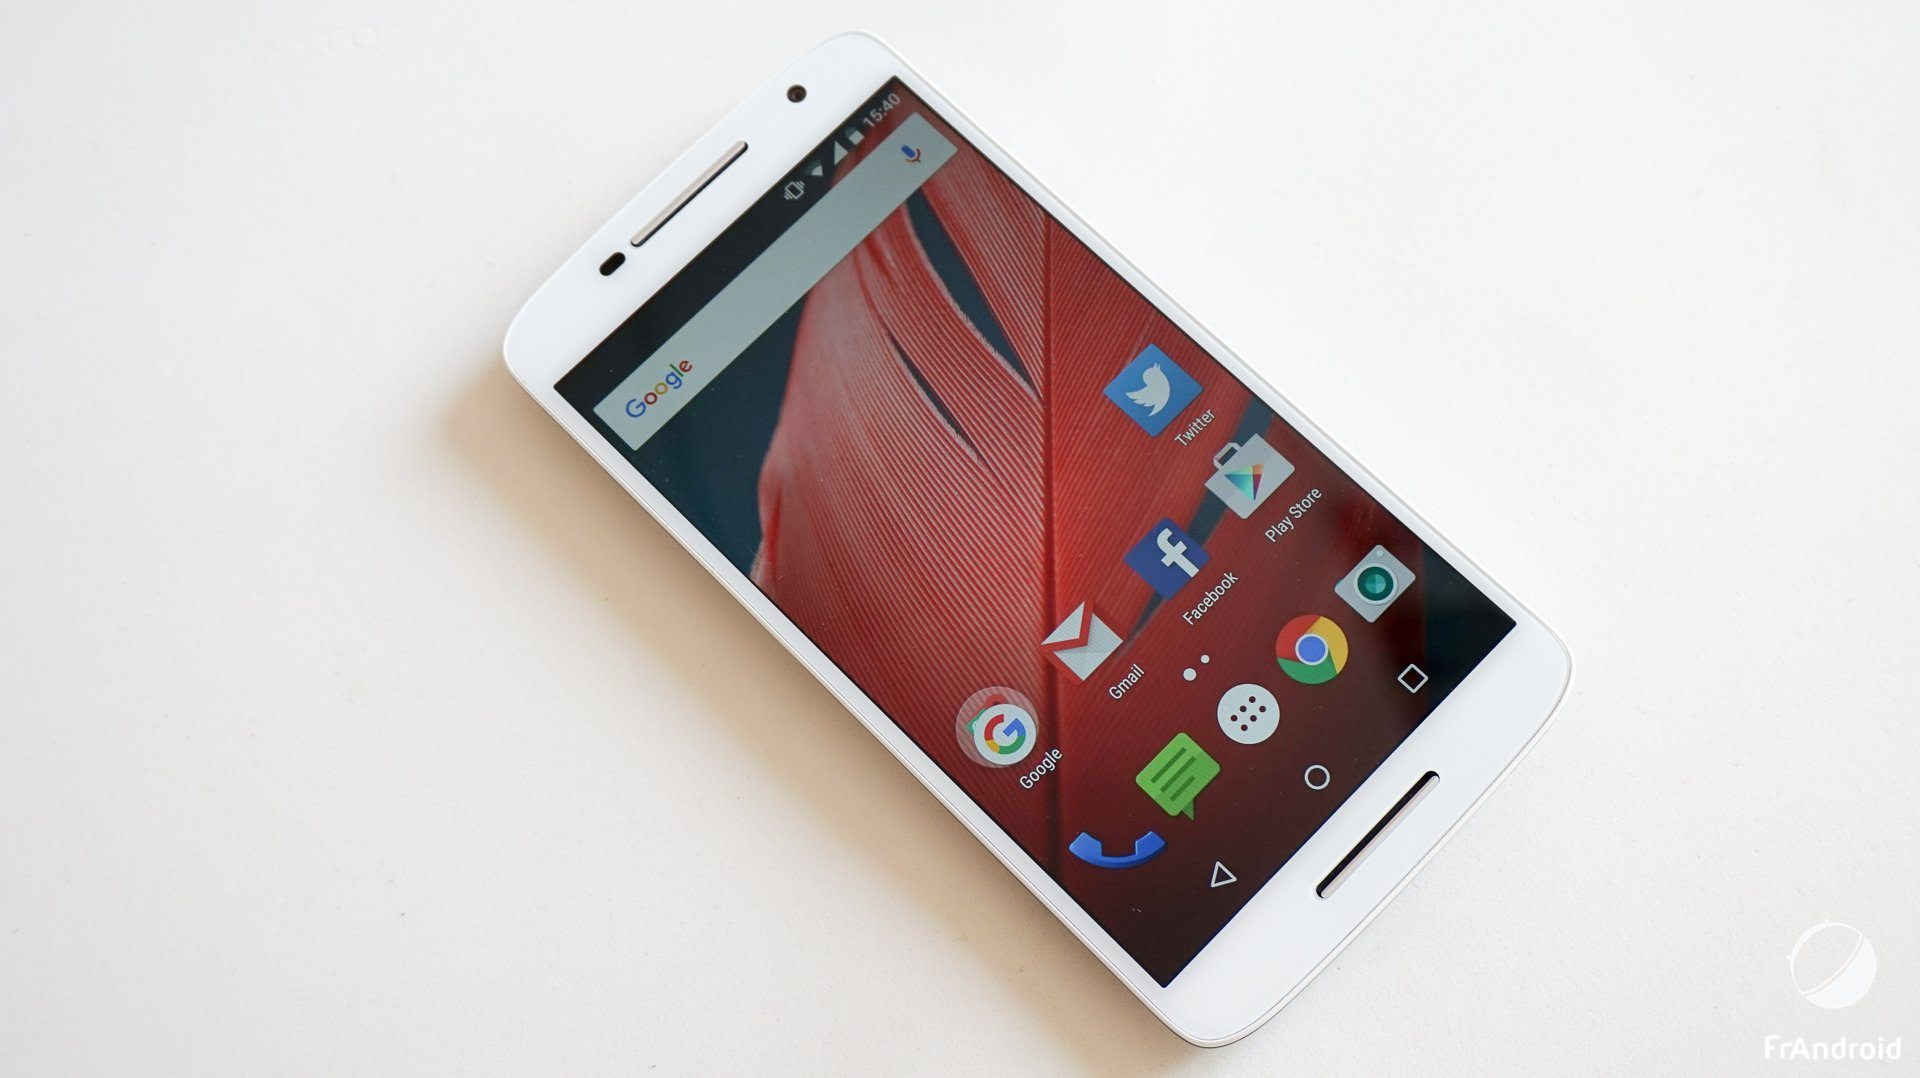 Android 6.0 Marshmallow en approche sur le Motorola Moto X Play